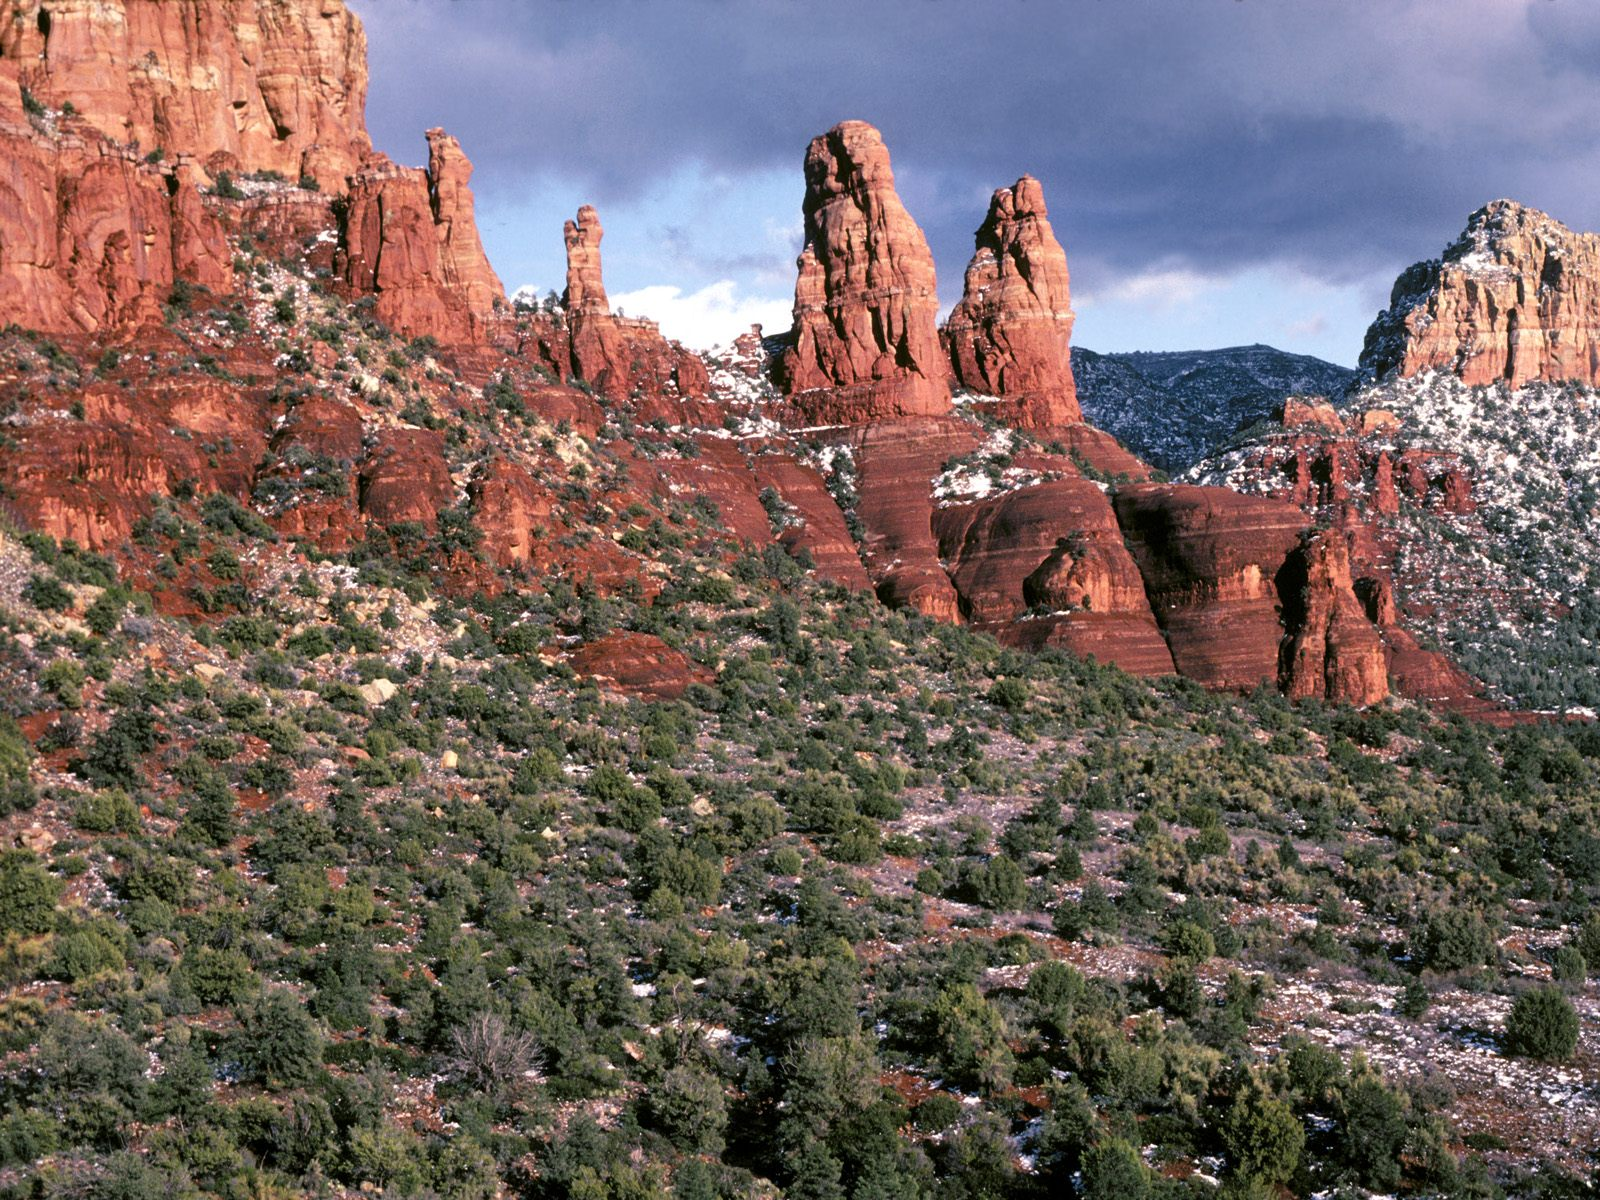 Spires Sedona Arizona Wallpapers Pictures Photos and Backgrounds 1600x1200